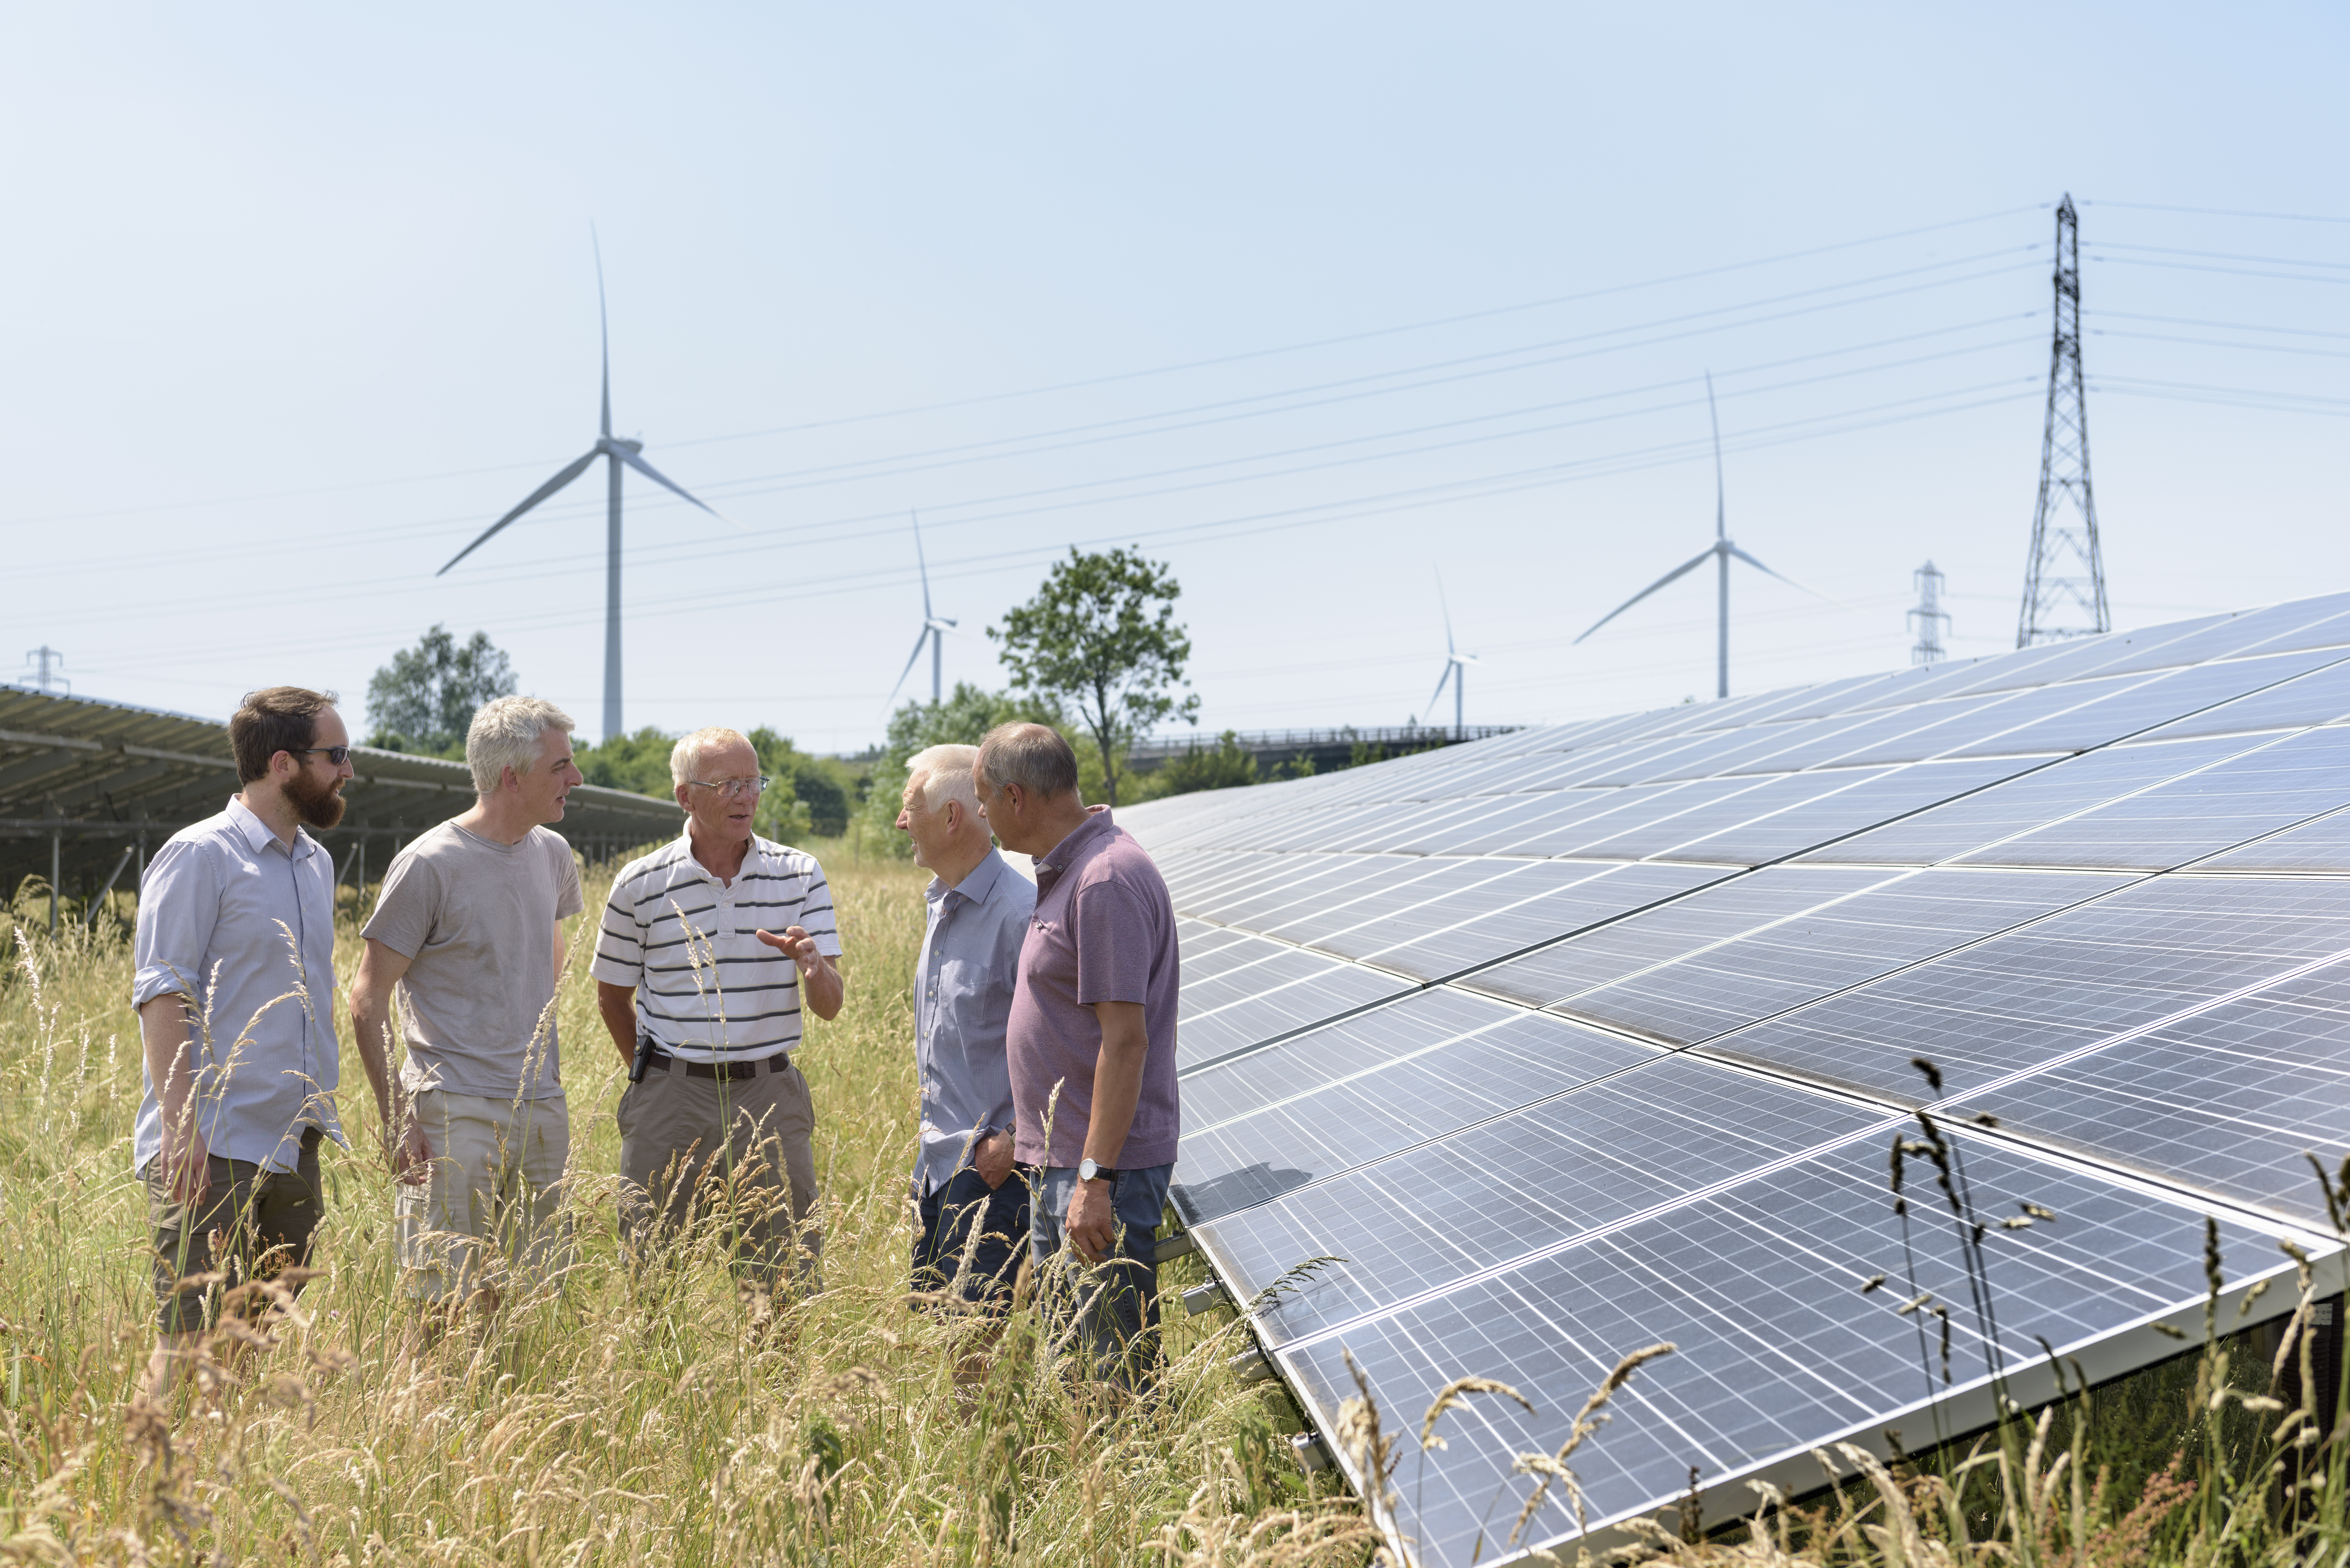 Local community members discussing their solar farm